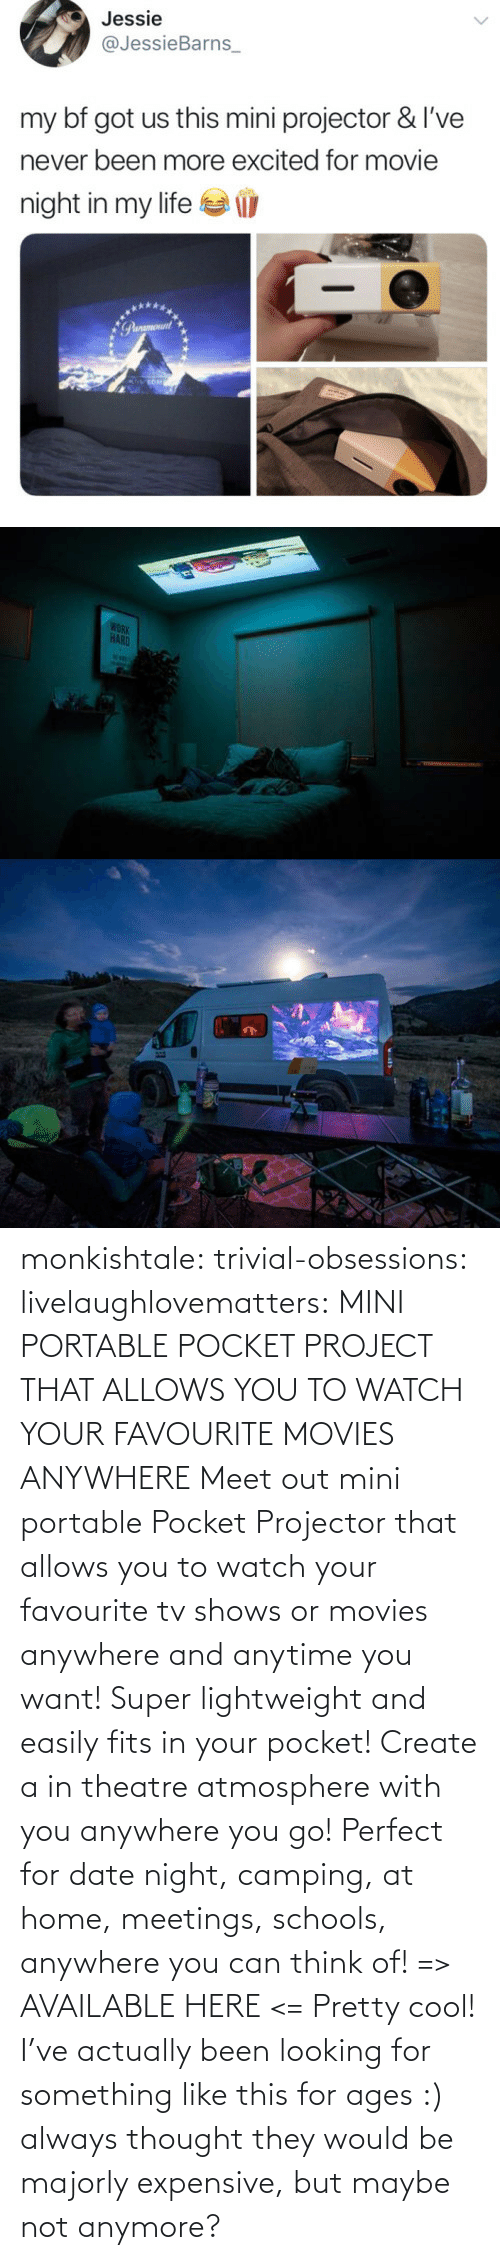 Movies, Tumblr, and TV Shows: monkishtale: trivial-obsessions:   livelaughlovematters:   MINI PORTABLE POCKET PROJECT THAT ALLOWS YOU TO WATCH YOUR FAVOURITE MOVIES ANYWHERE Meet out mini portable Pocket Projector that allows you to watch your favourite tv shows or movies anywhere and anytime you want! Super lightweight and easily fits in your pocket! Create a in theatre atmosphere with you anywhere you go! Perfect for date night, camping, at home, meetings, schools, anywhere you can think of! => AVAILABLE HERE <=    Pretty cool!    I've actually been looking for something like this for ages :) always thought they would be majorly expensive, but maybe not anymore?